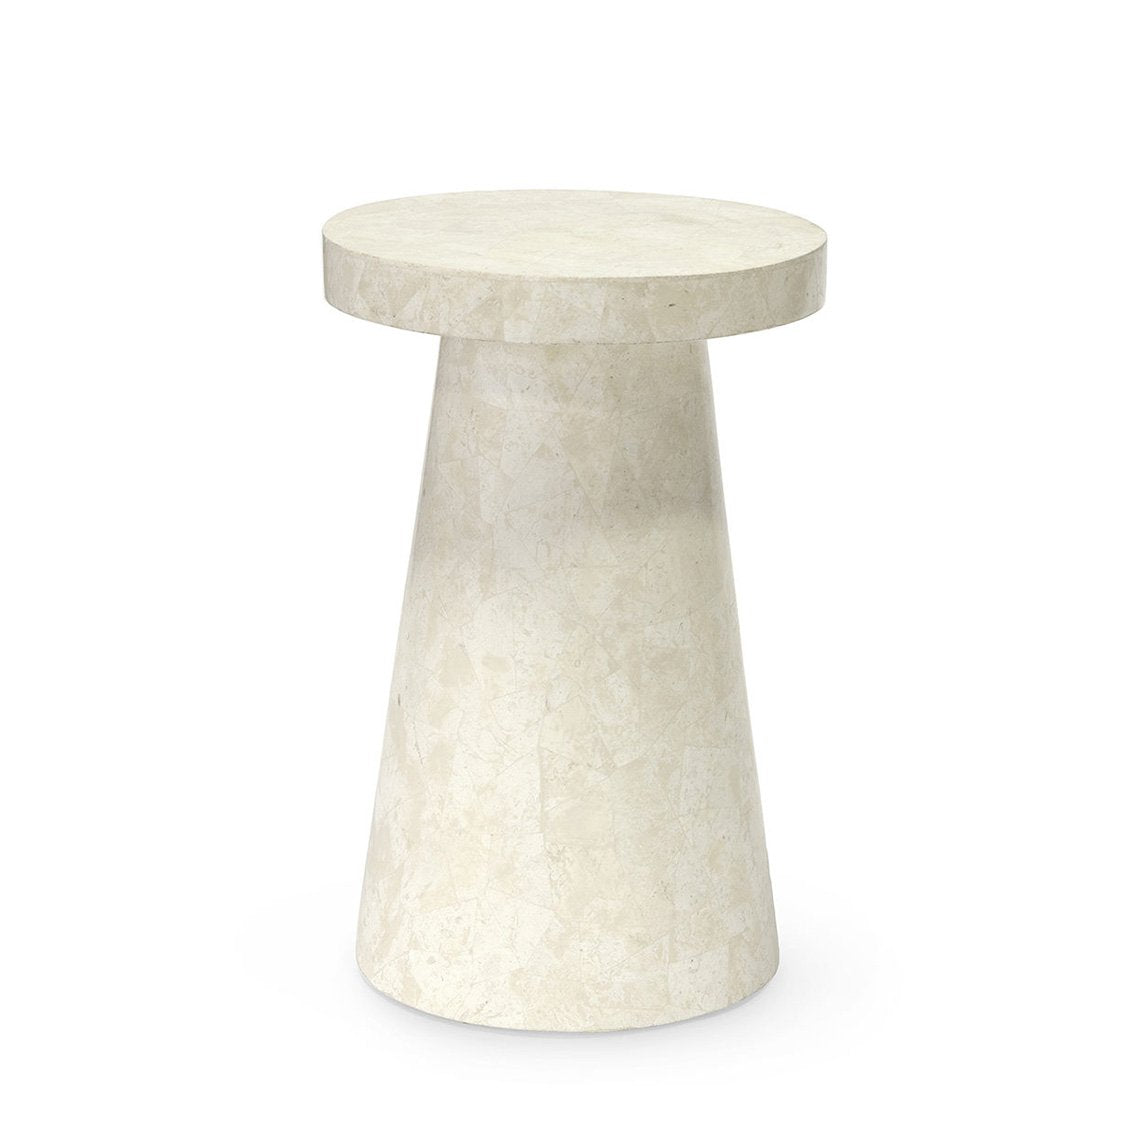 Foley Stone Od Side Table Tall, White